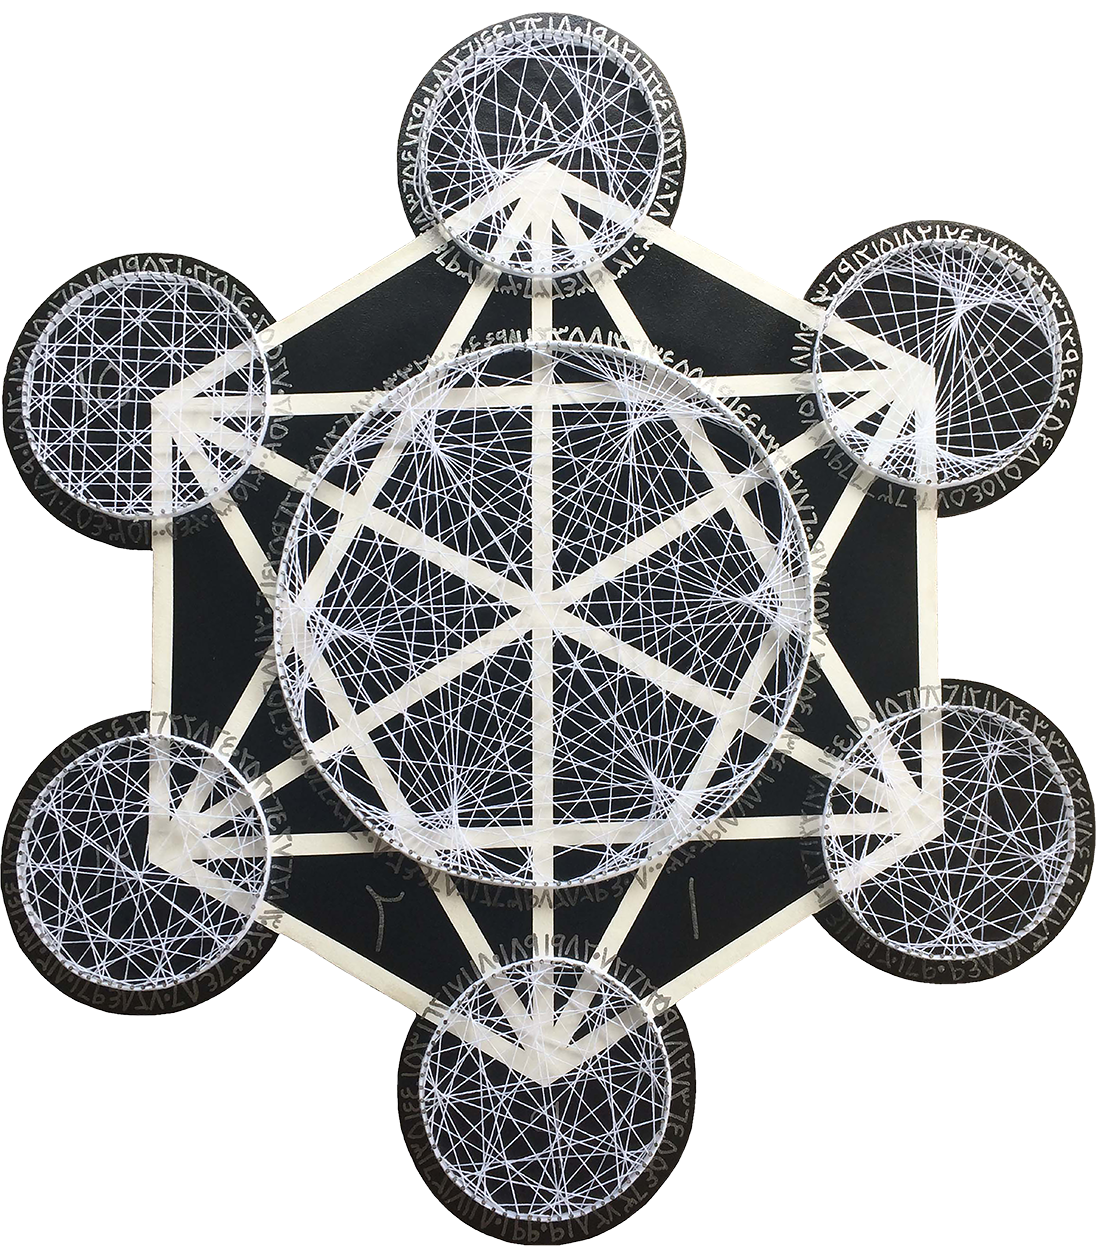 Multiplication Time Table of Number 3 in Metatron Cube